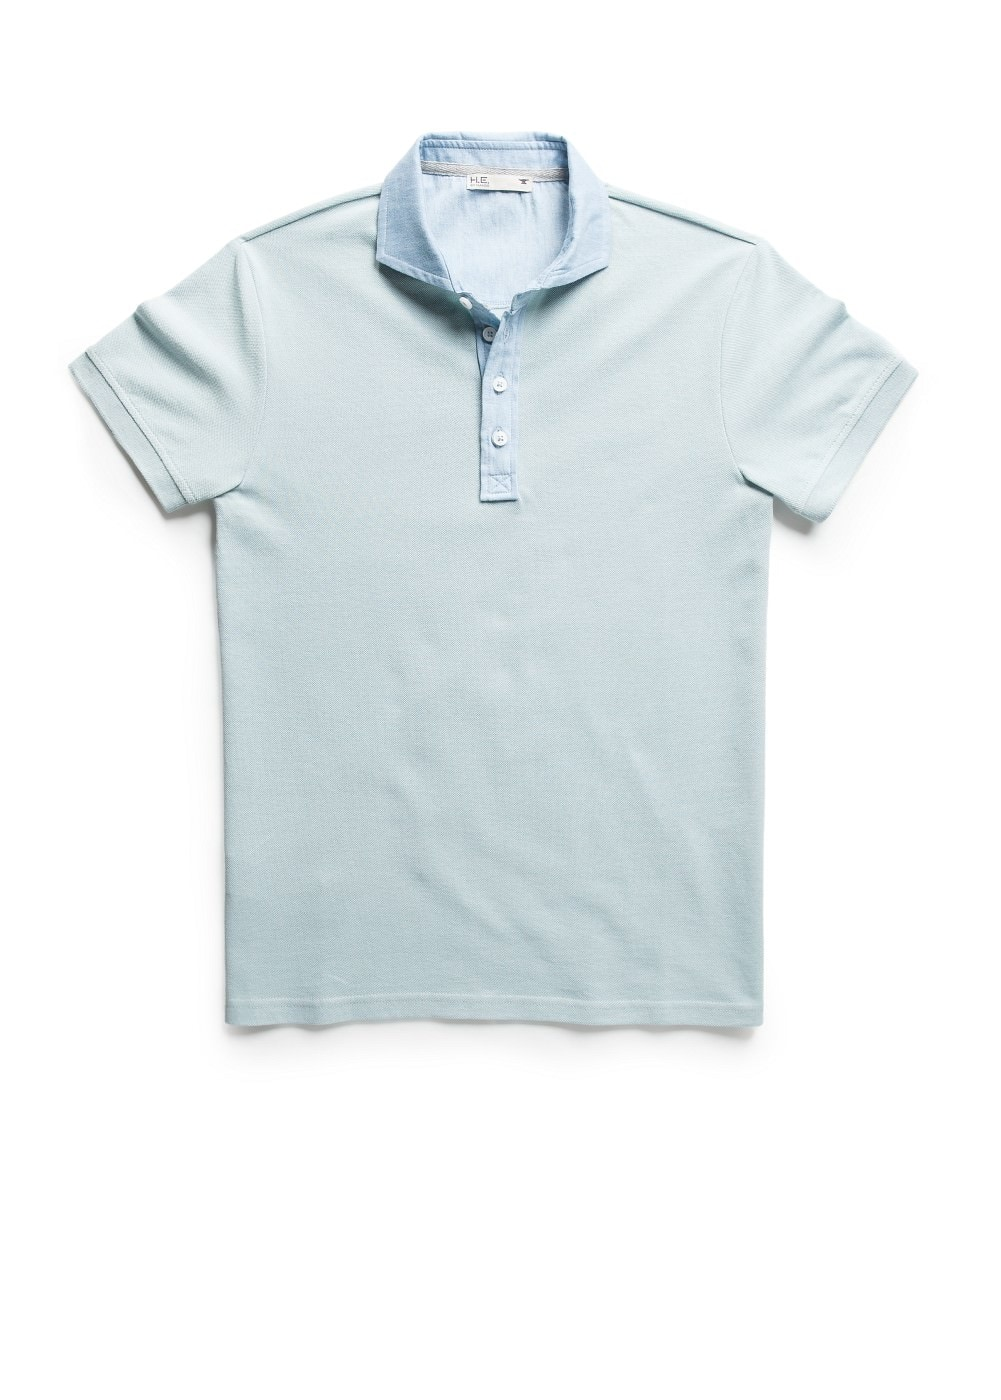 Shirt collar polo shirt